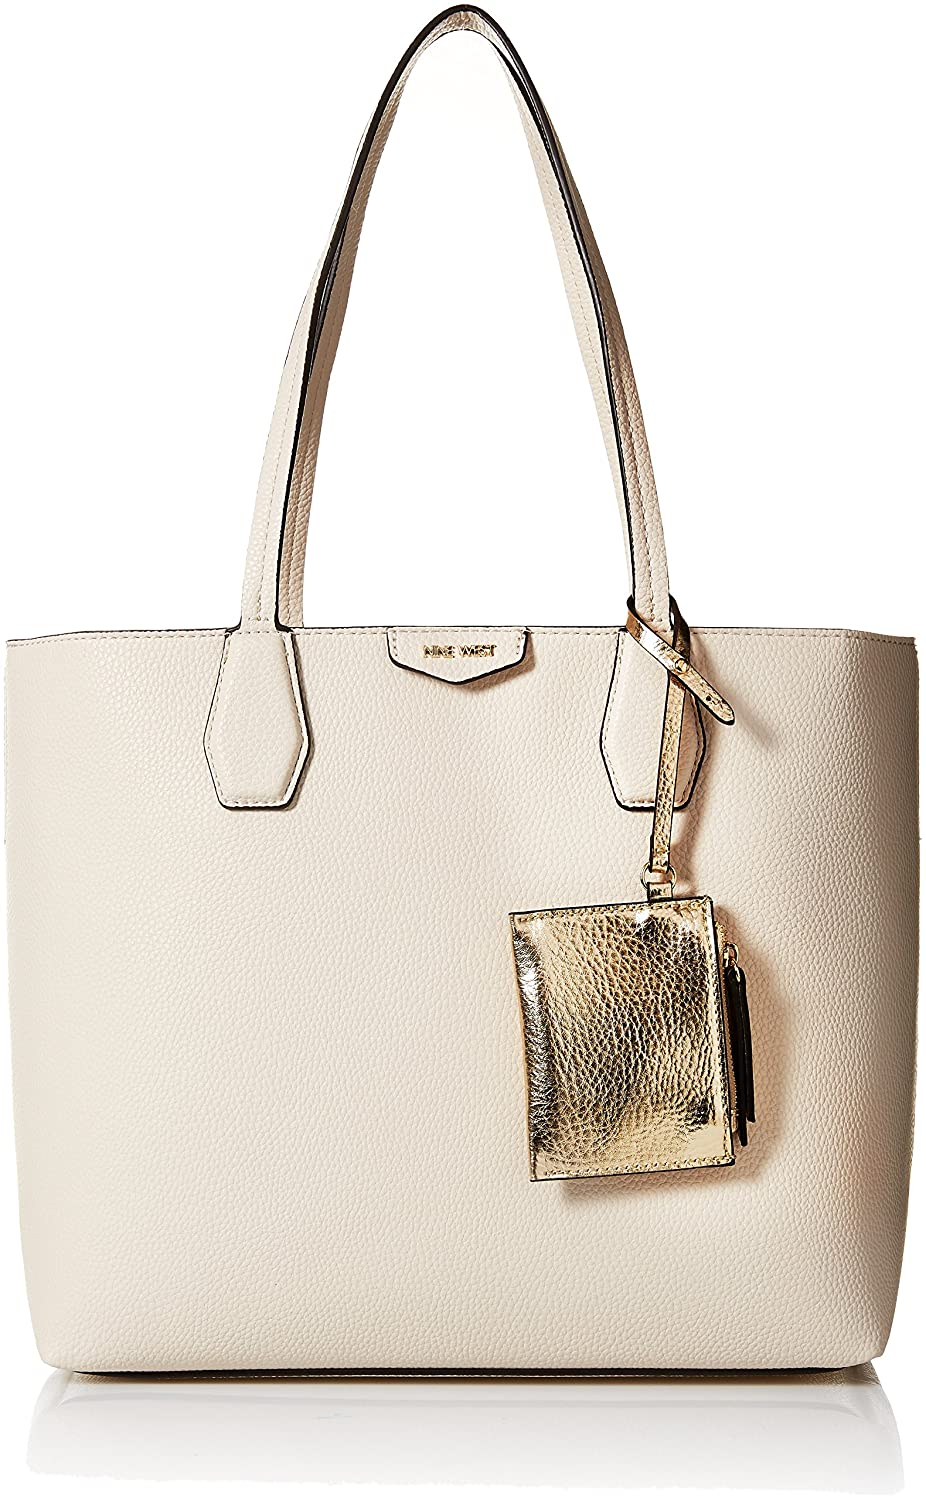 7ae9f95a4 Nine West womens Nine West Caden Tote Tote Bag One Size: Amazon.com.au:  Fashion